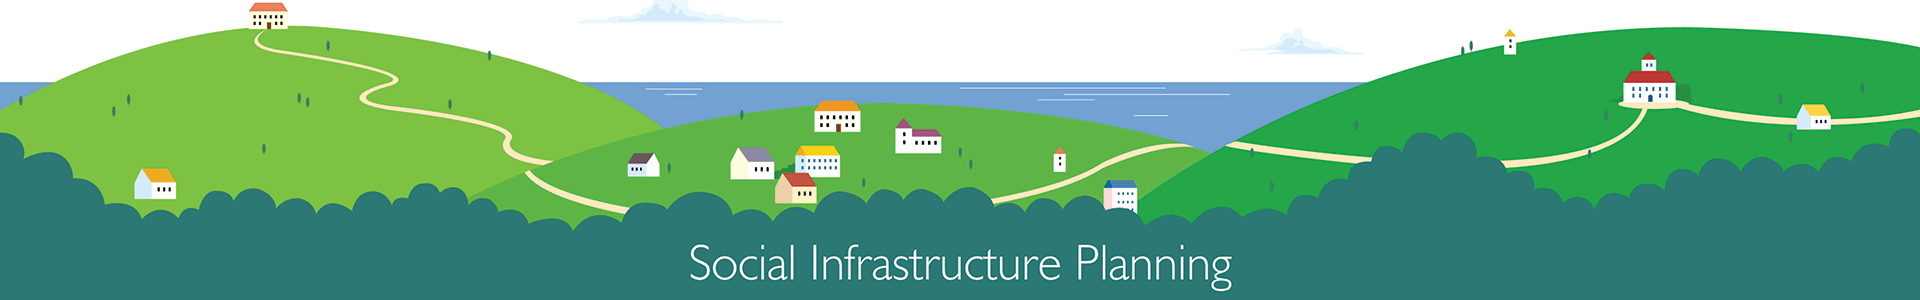 Social Infrastructure Planning